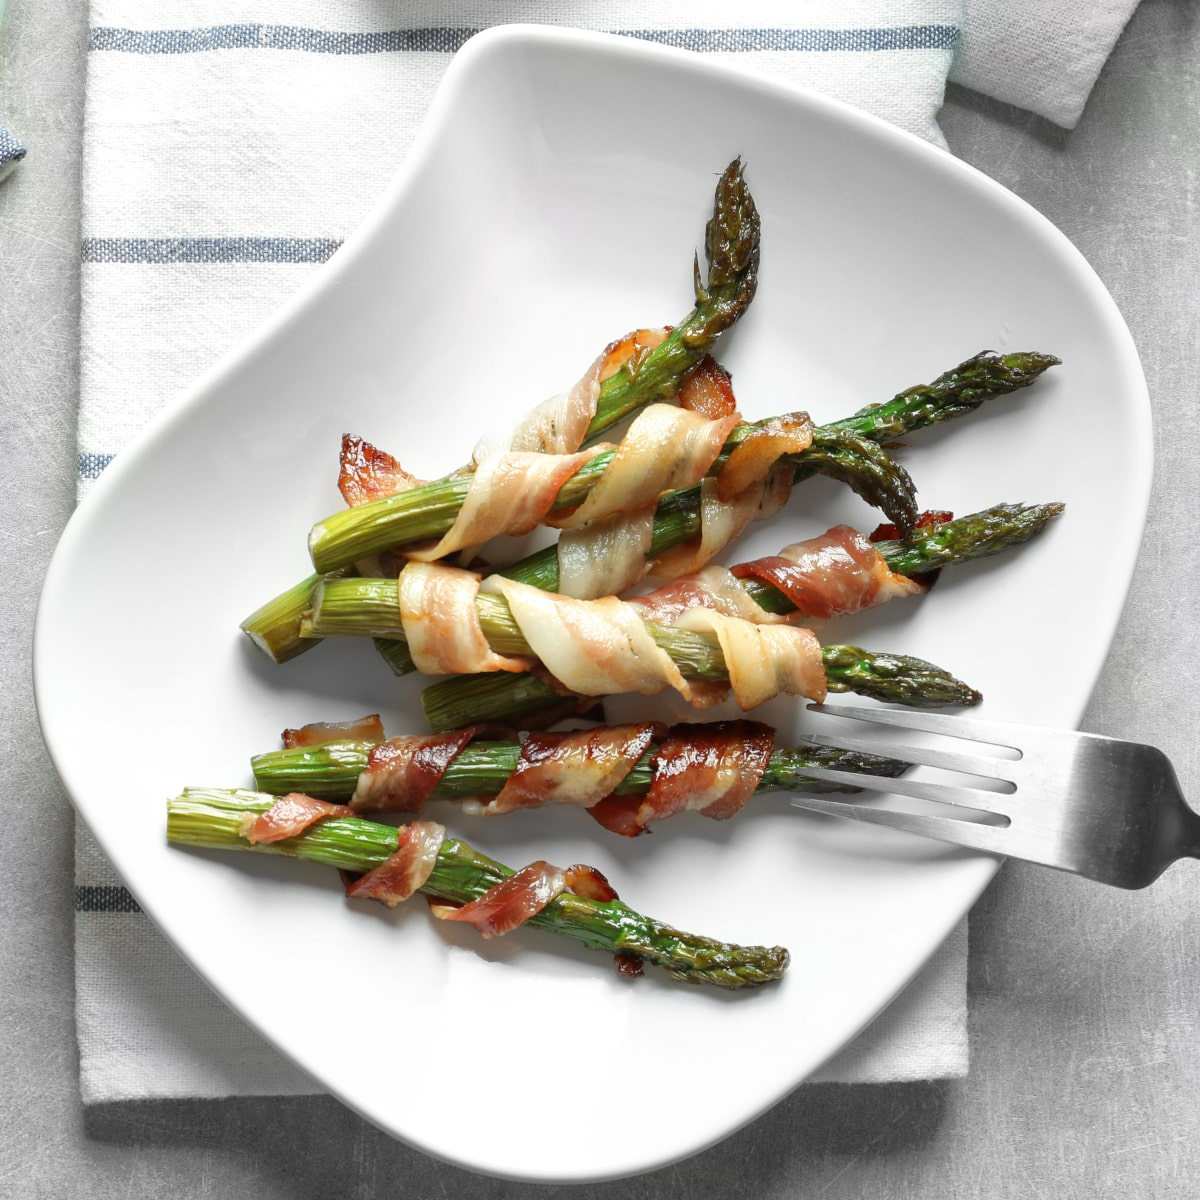 Air fryer asparagus wrapped in bacon and served on a white plate